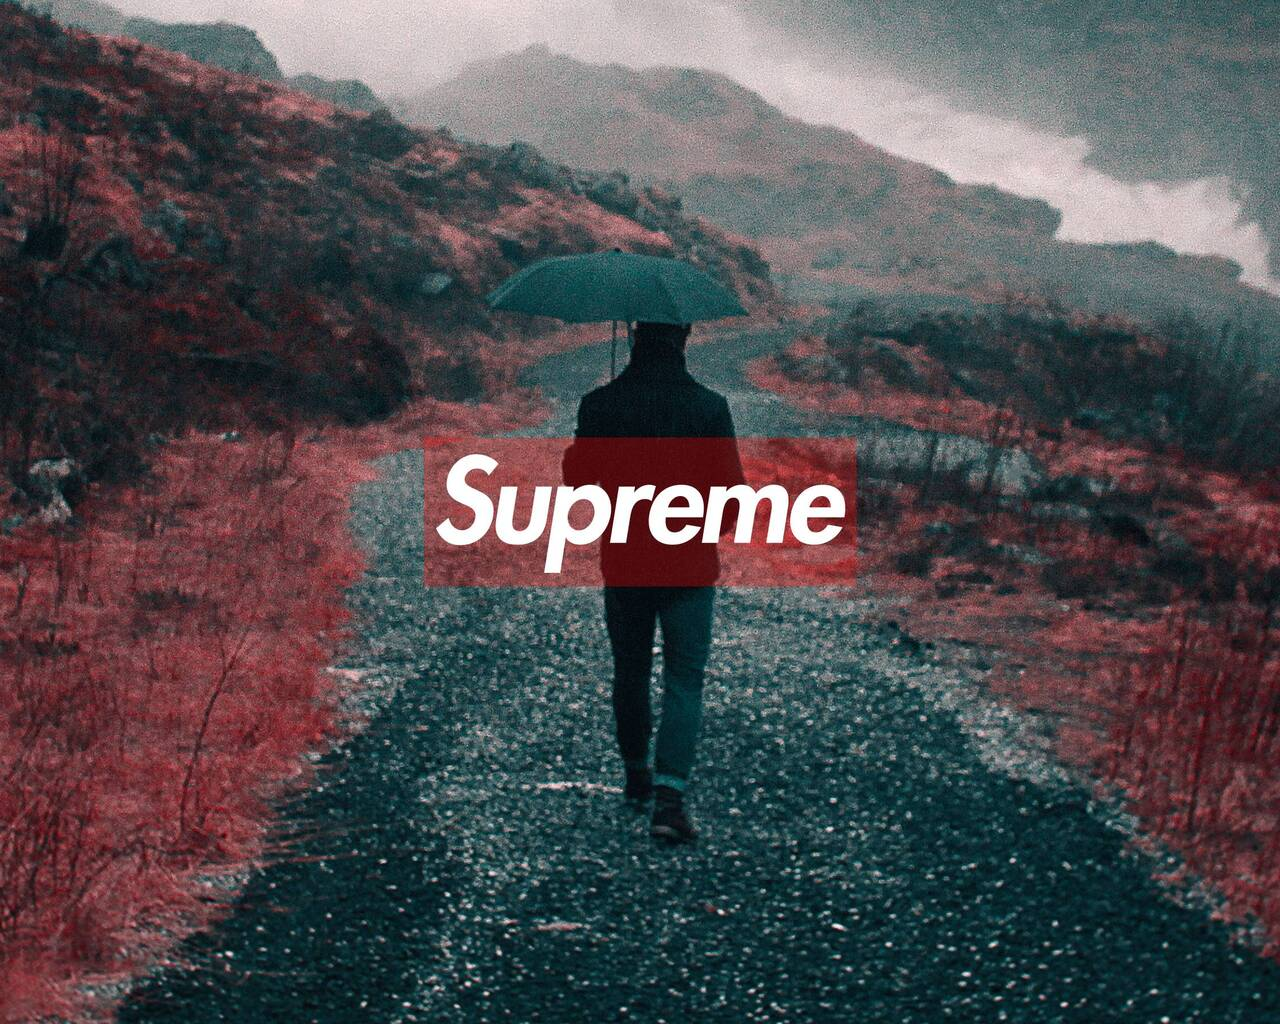 Cars So Cool Wallpaper For Computer 1280x1024 Supreme 1280x1024 Resolution Hd 4k Wallpapers